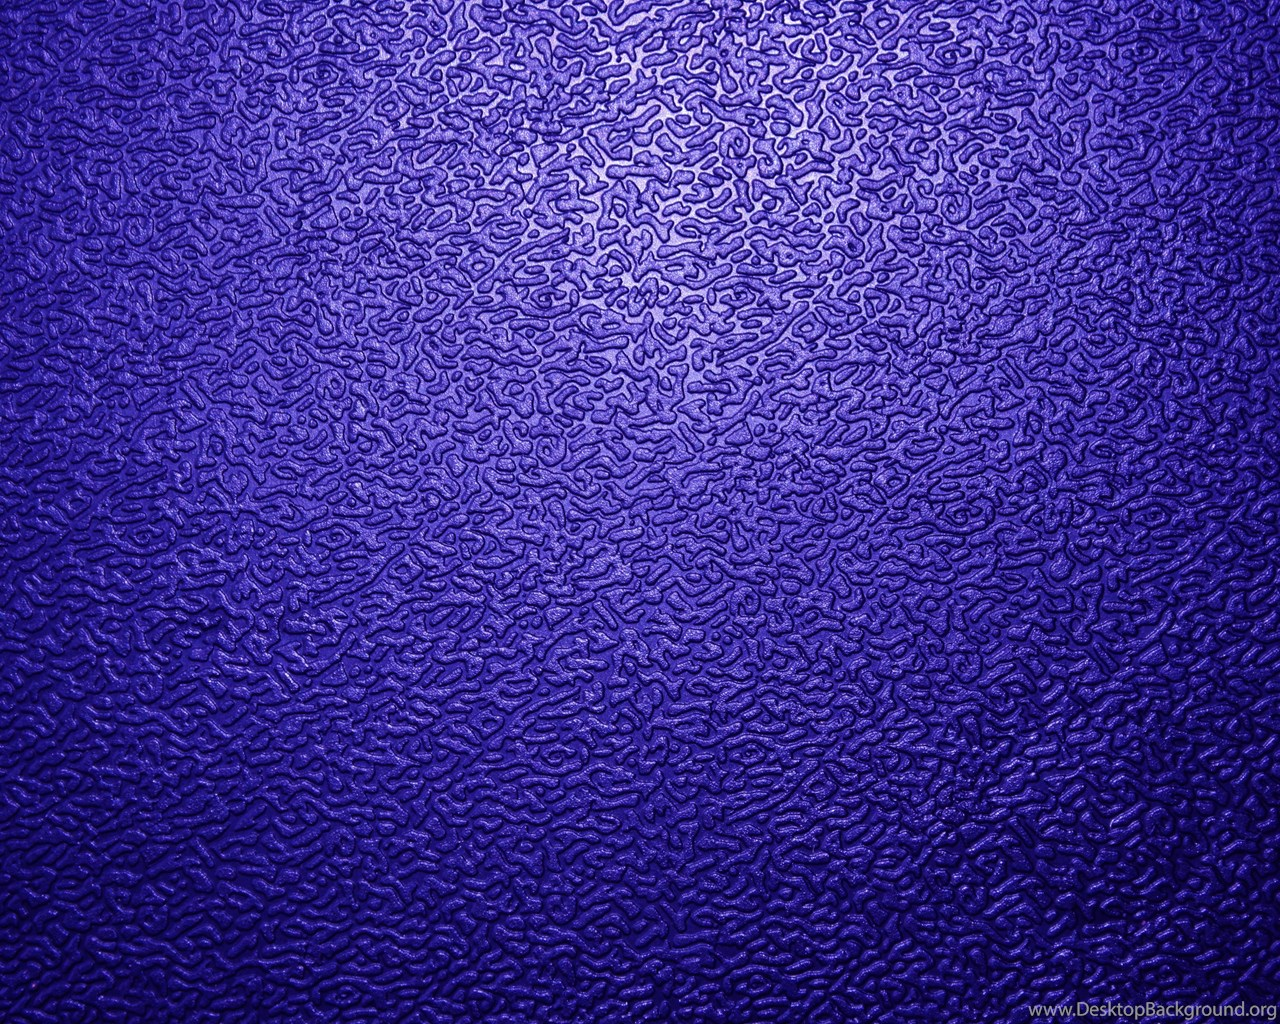 Textured Royal Blue Plastic Close Up Free High Resolution